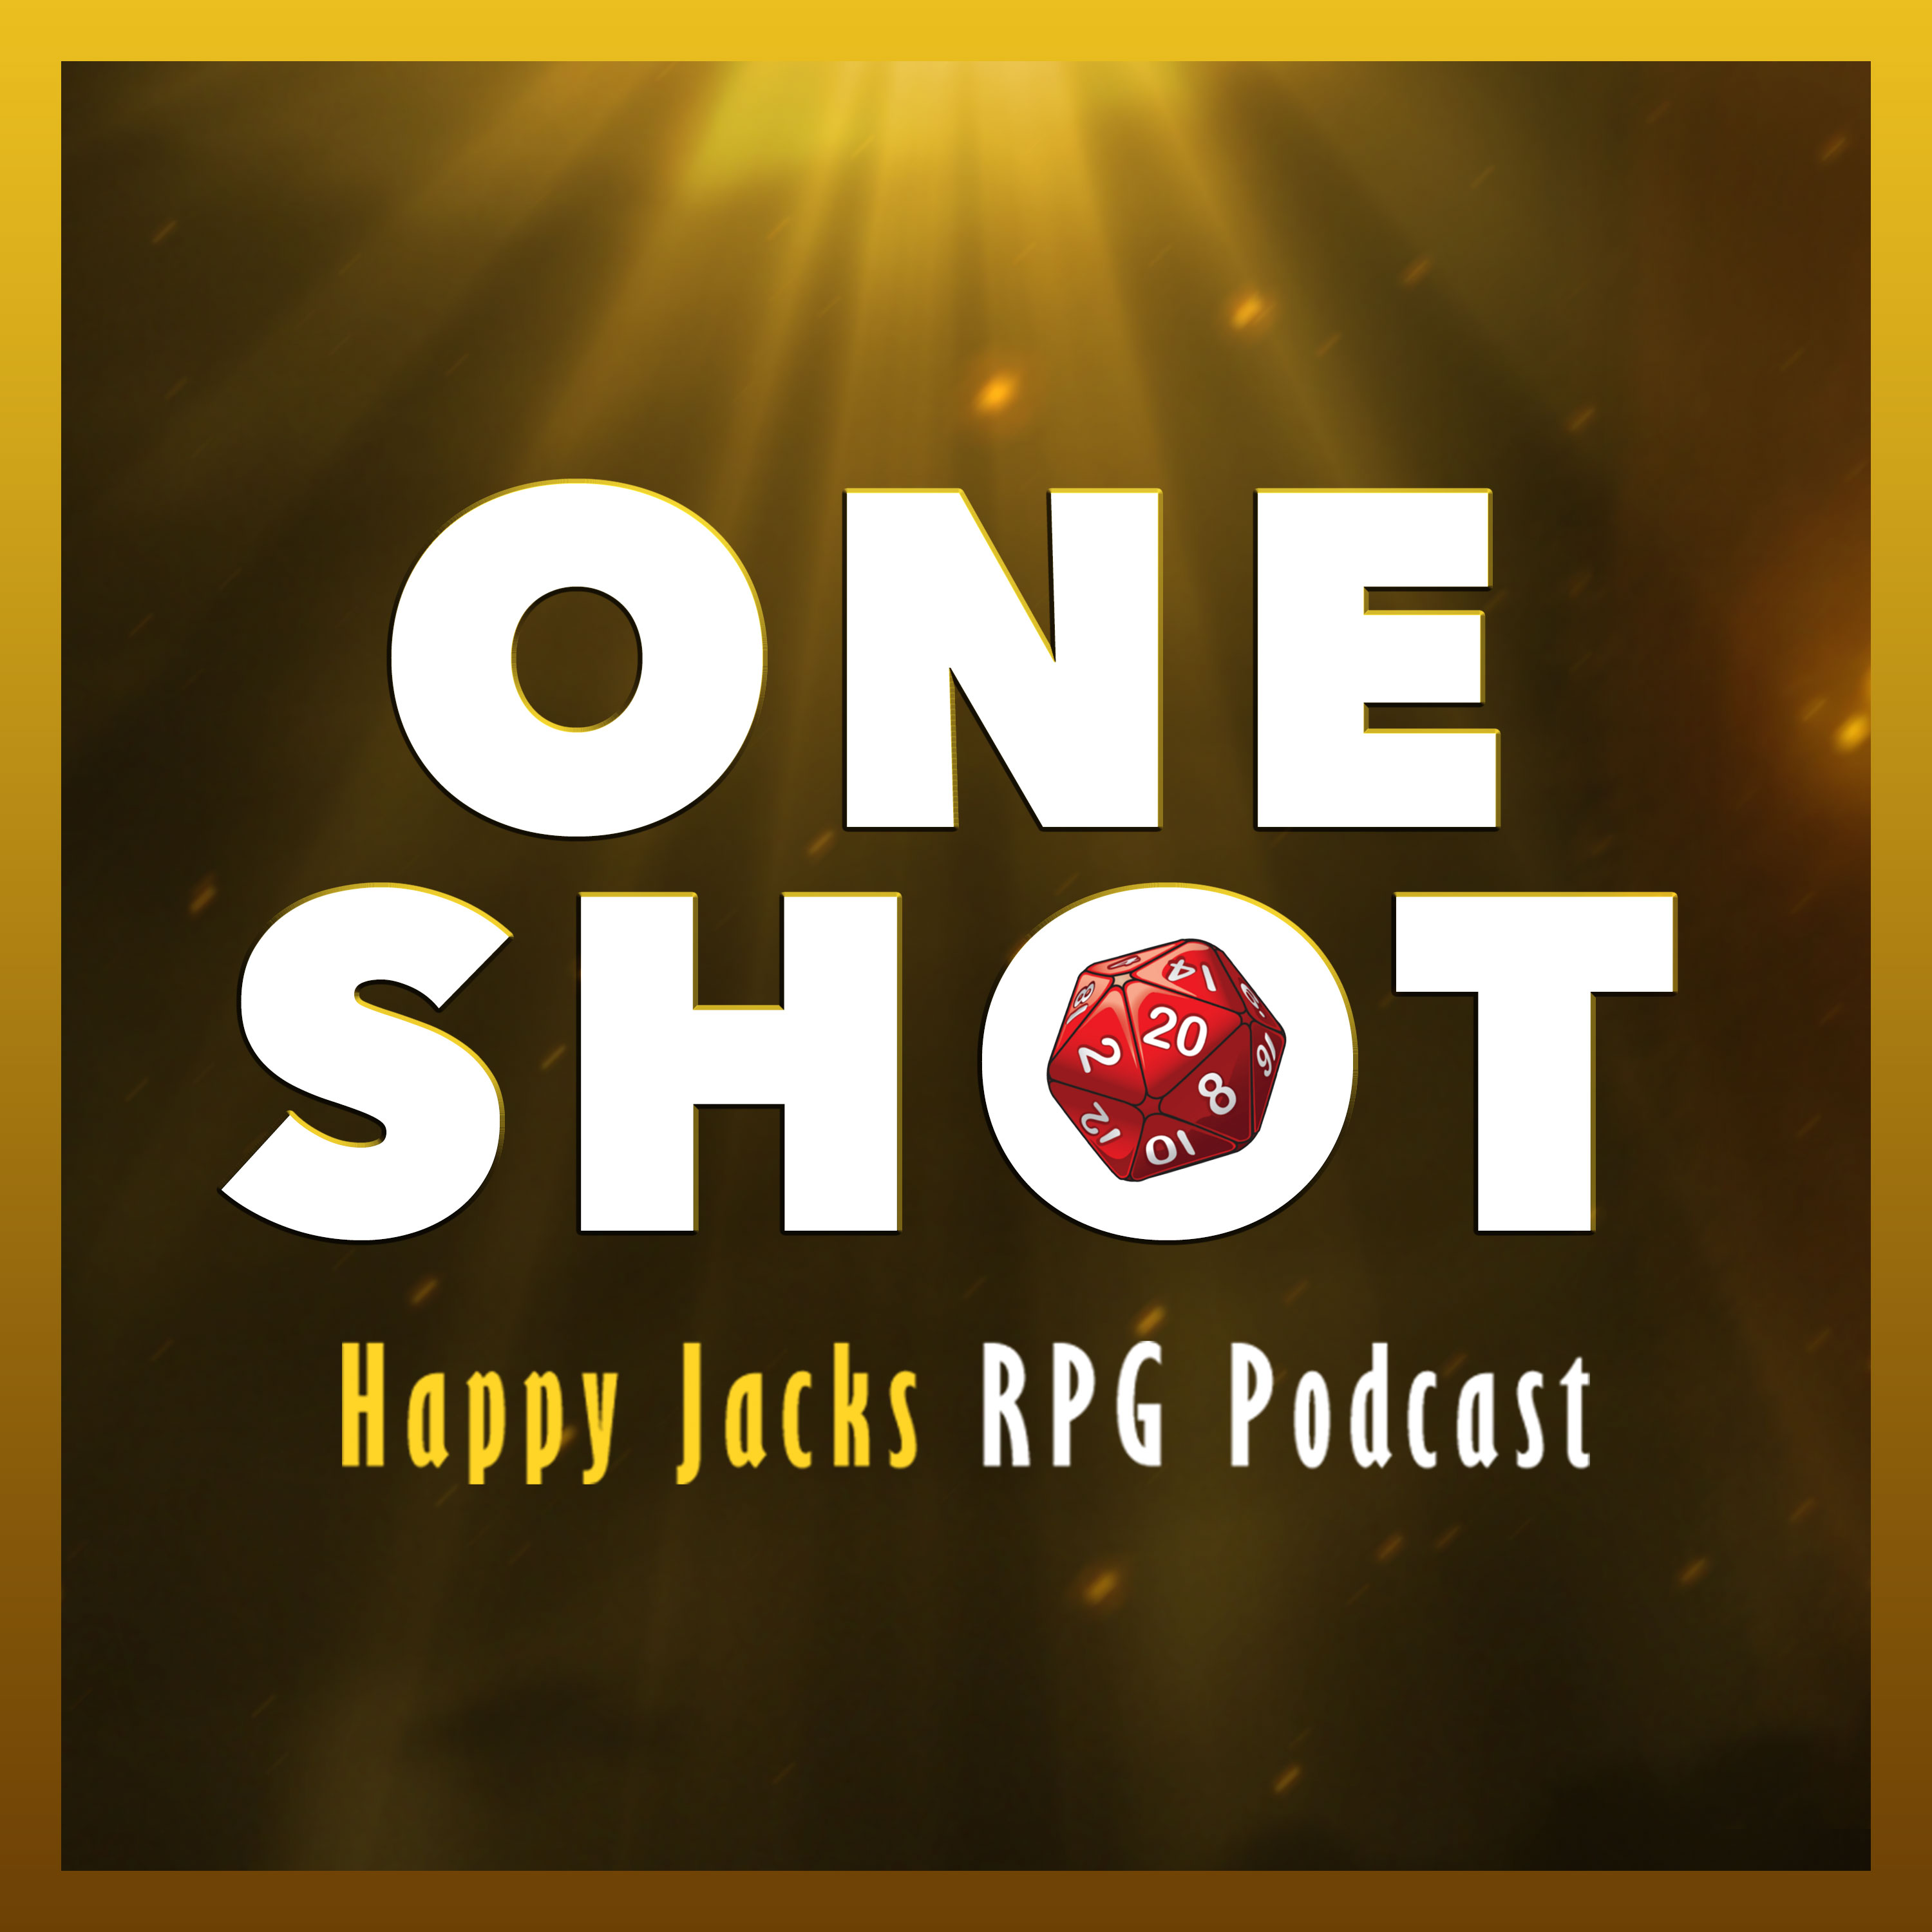 Happy Jacks RPG One Shots